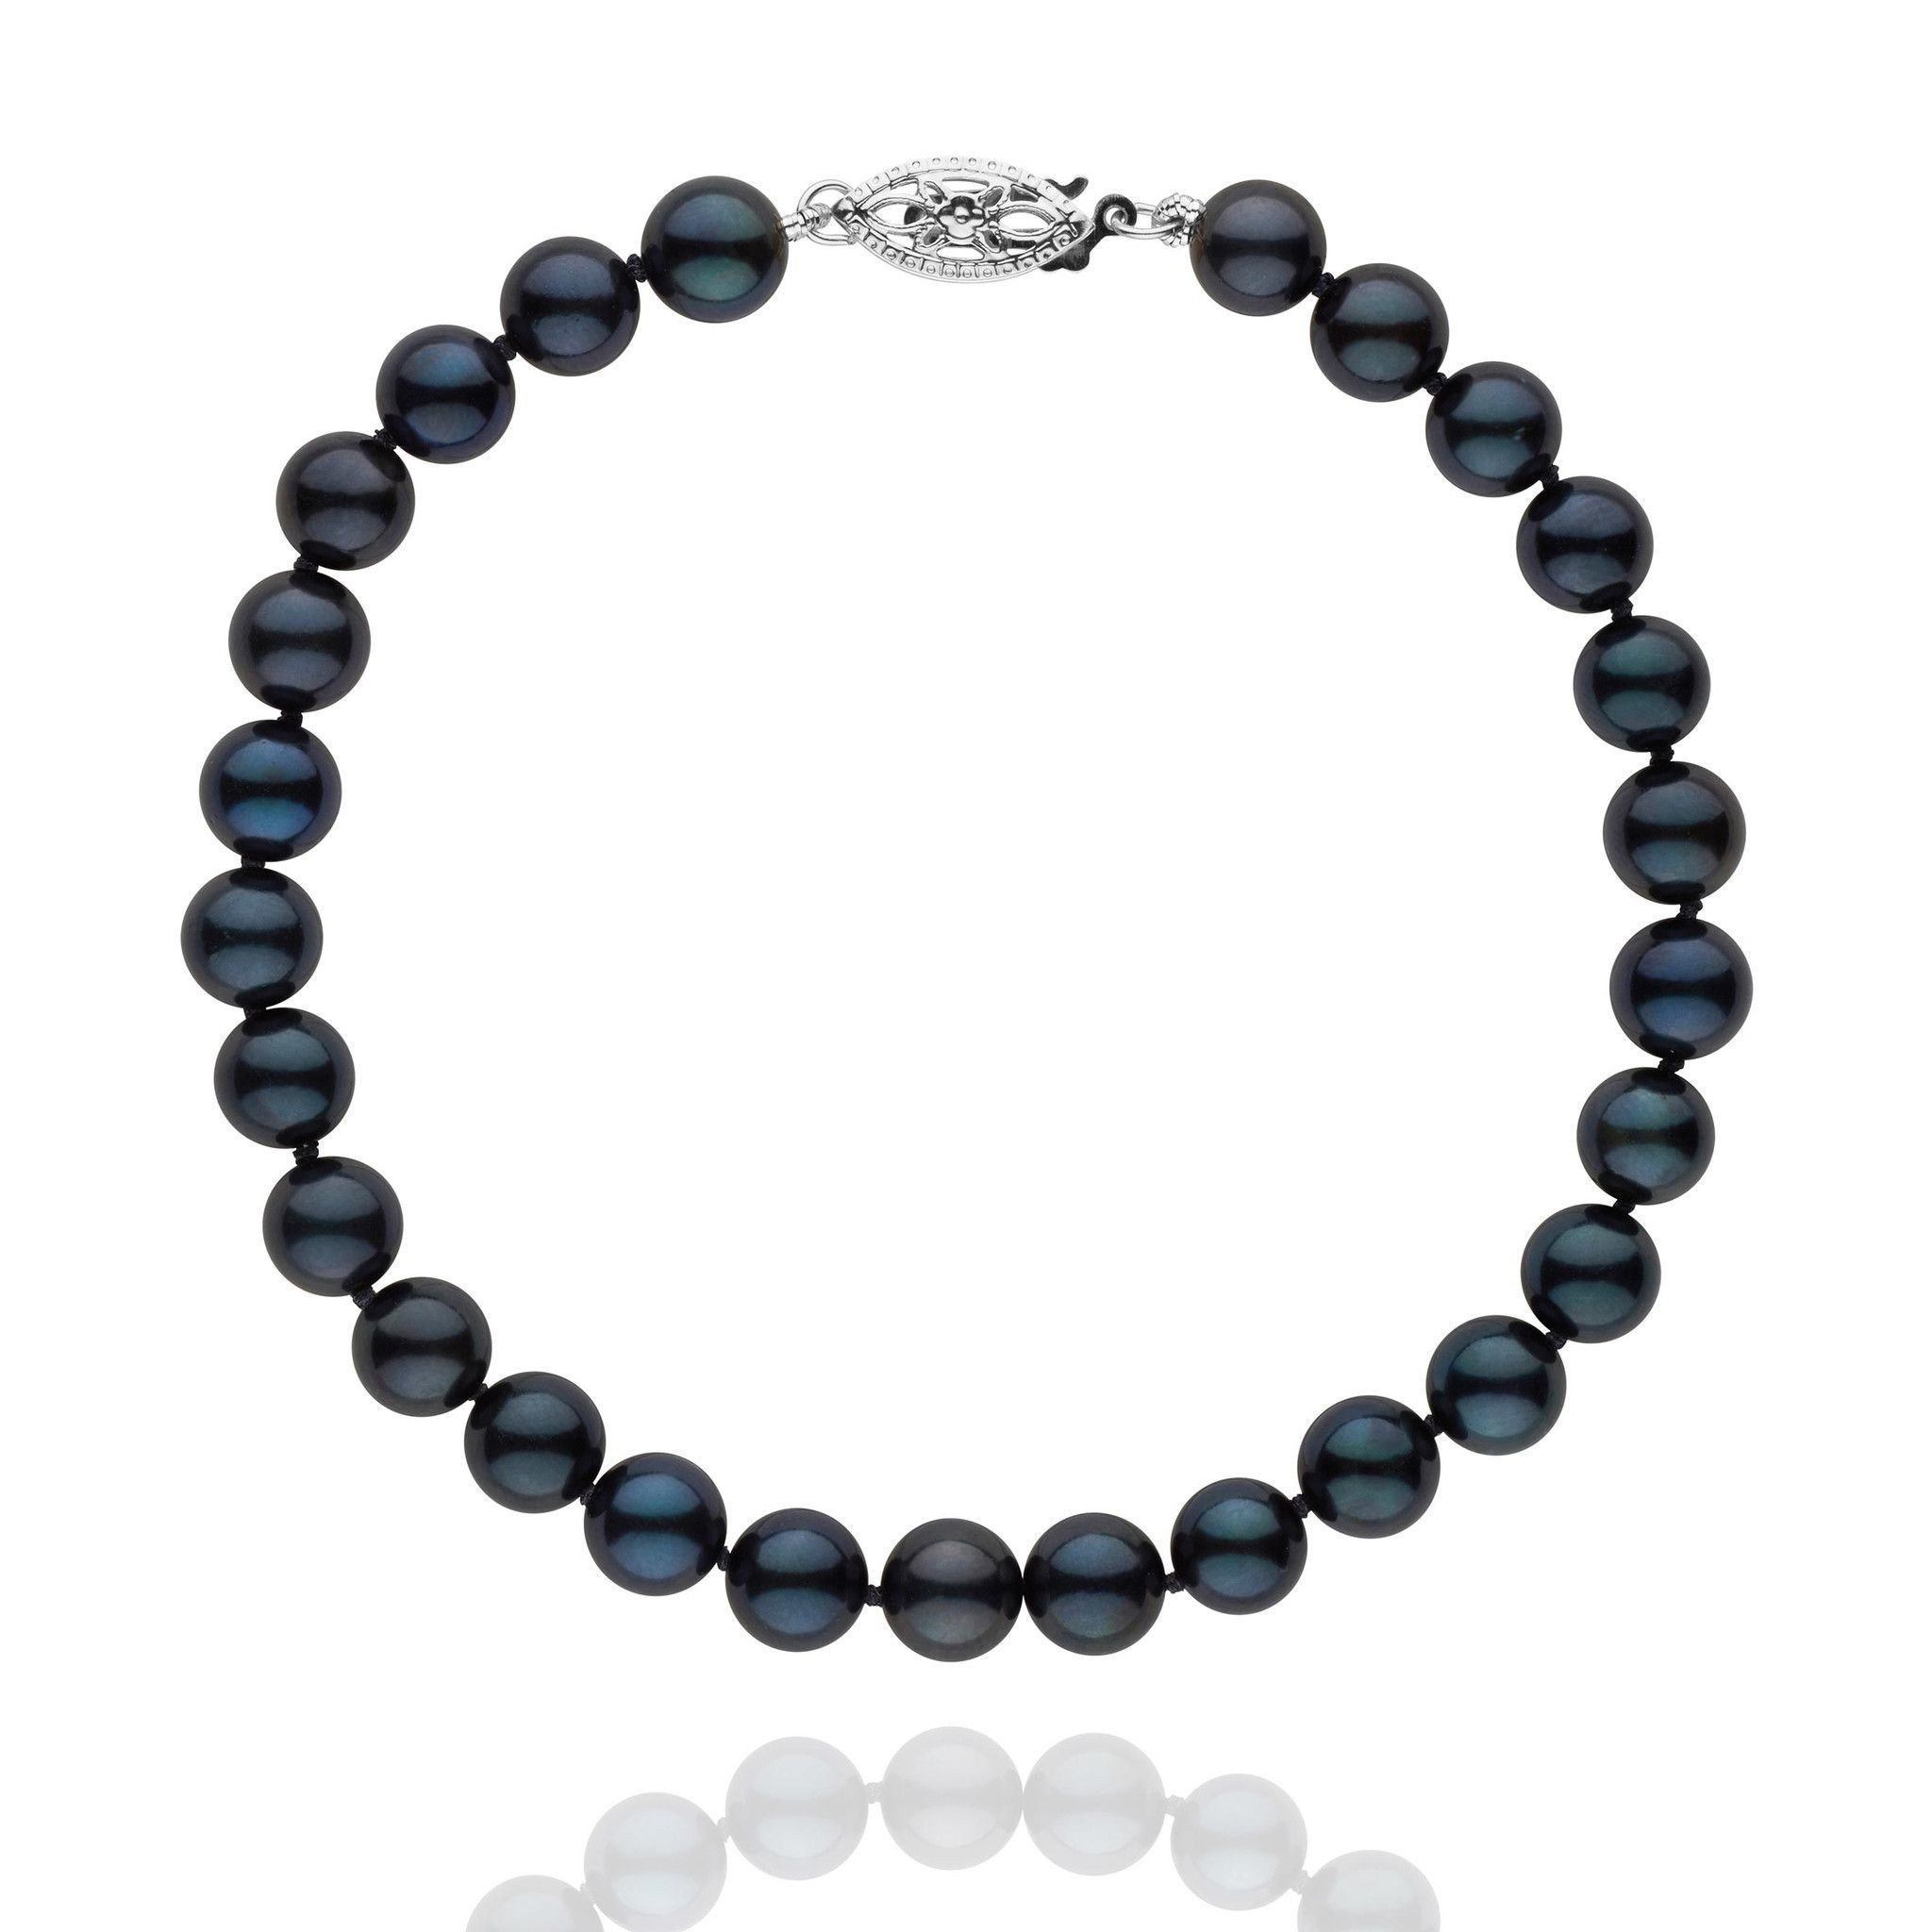 hematite item online and livemaster on shop bracelets pearl pearls bracelet black the buy handmade